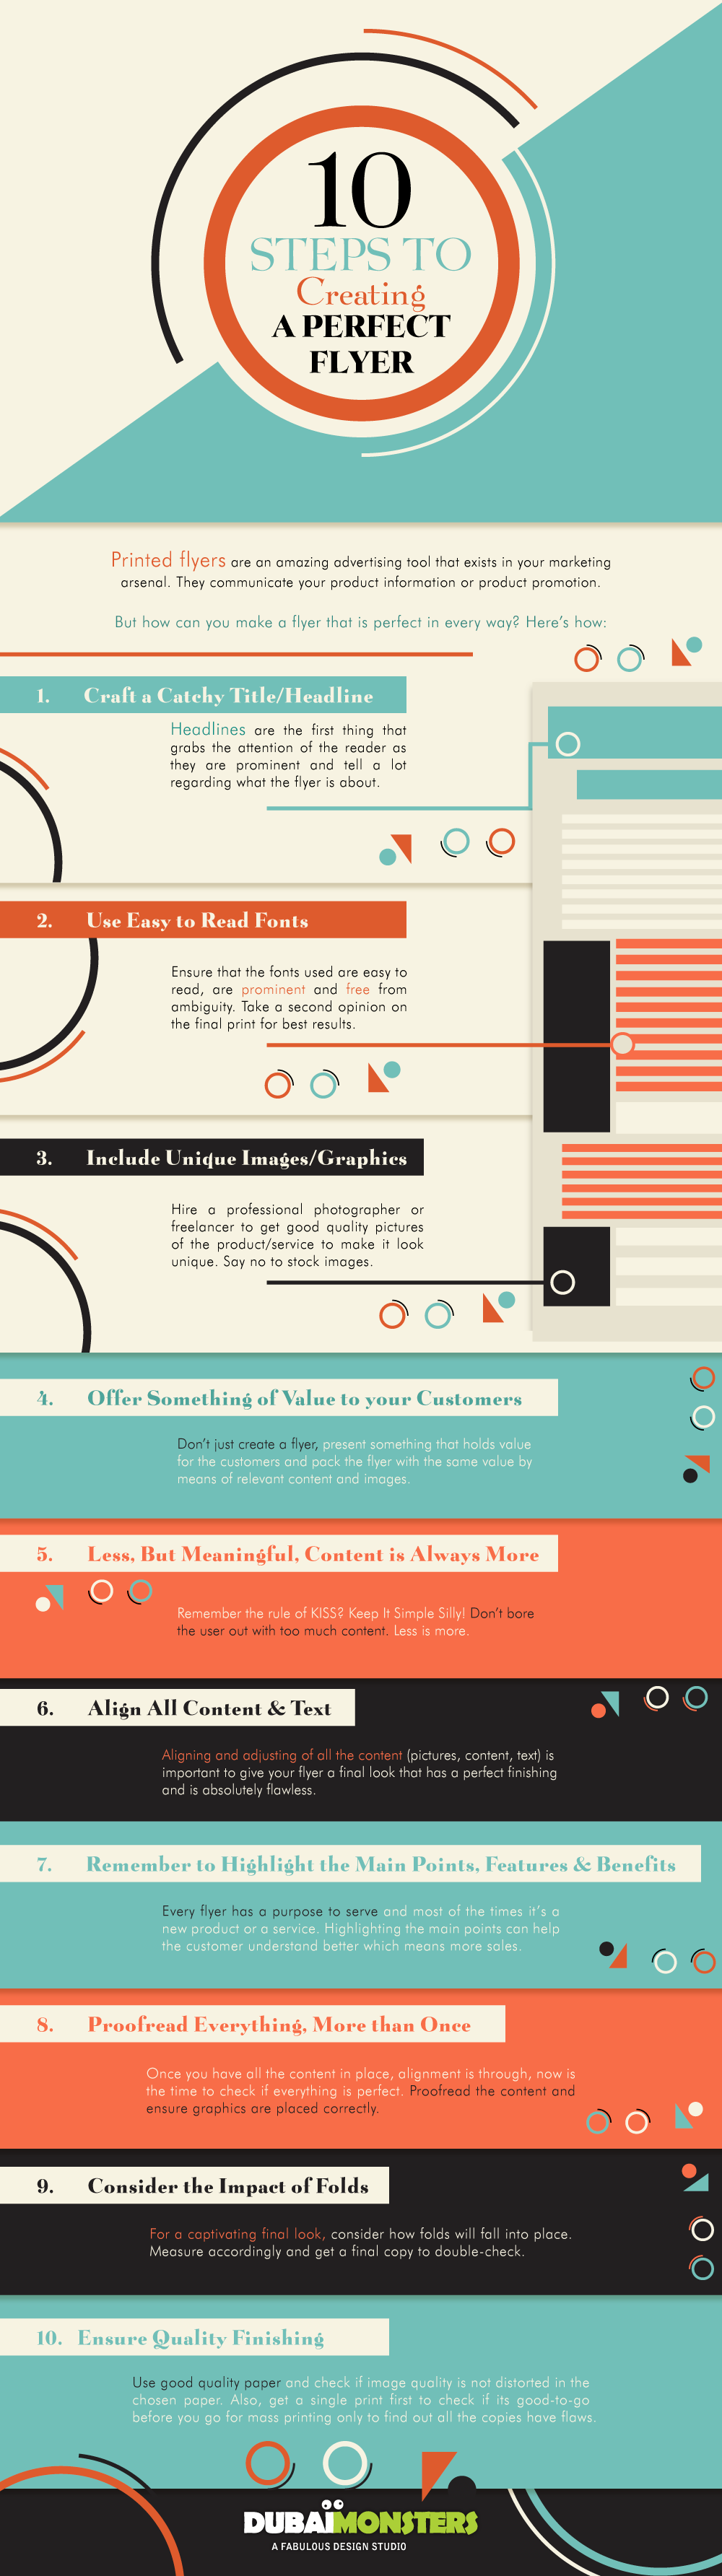 10 Steps To Creating a Perfect Flyer #Infographic